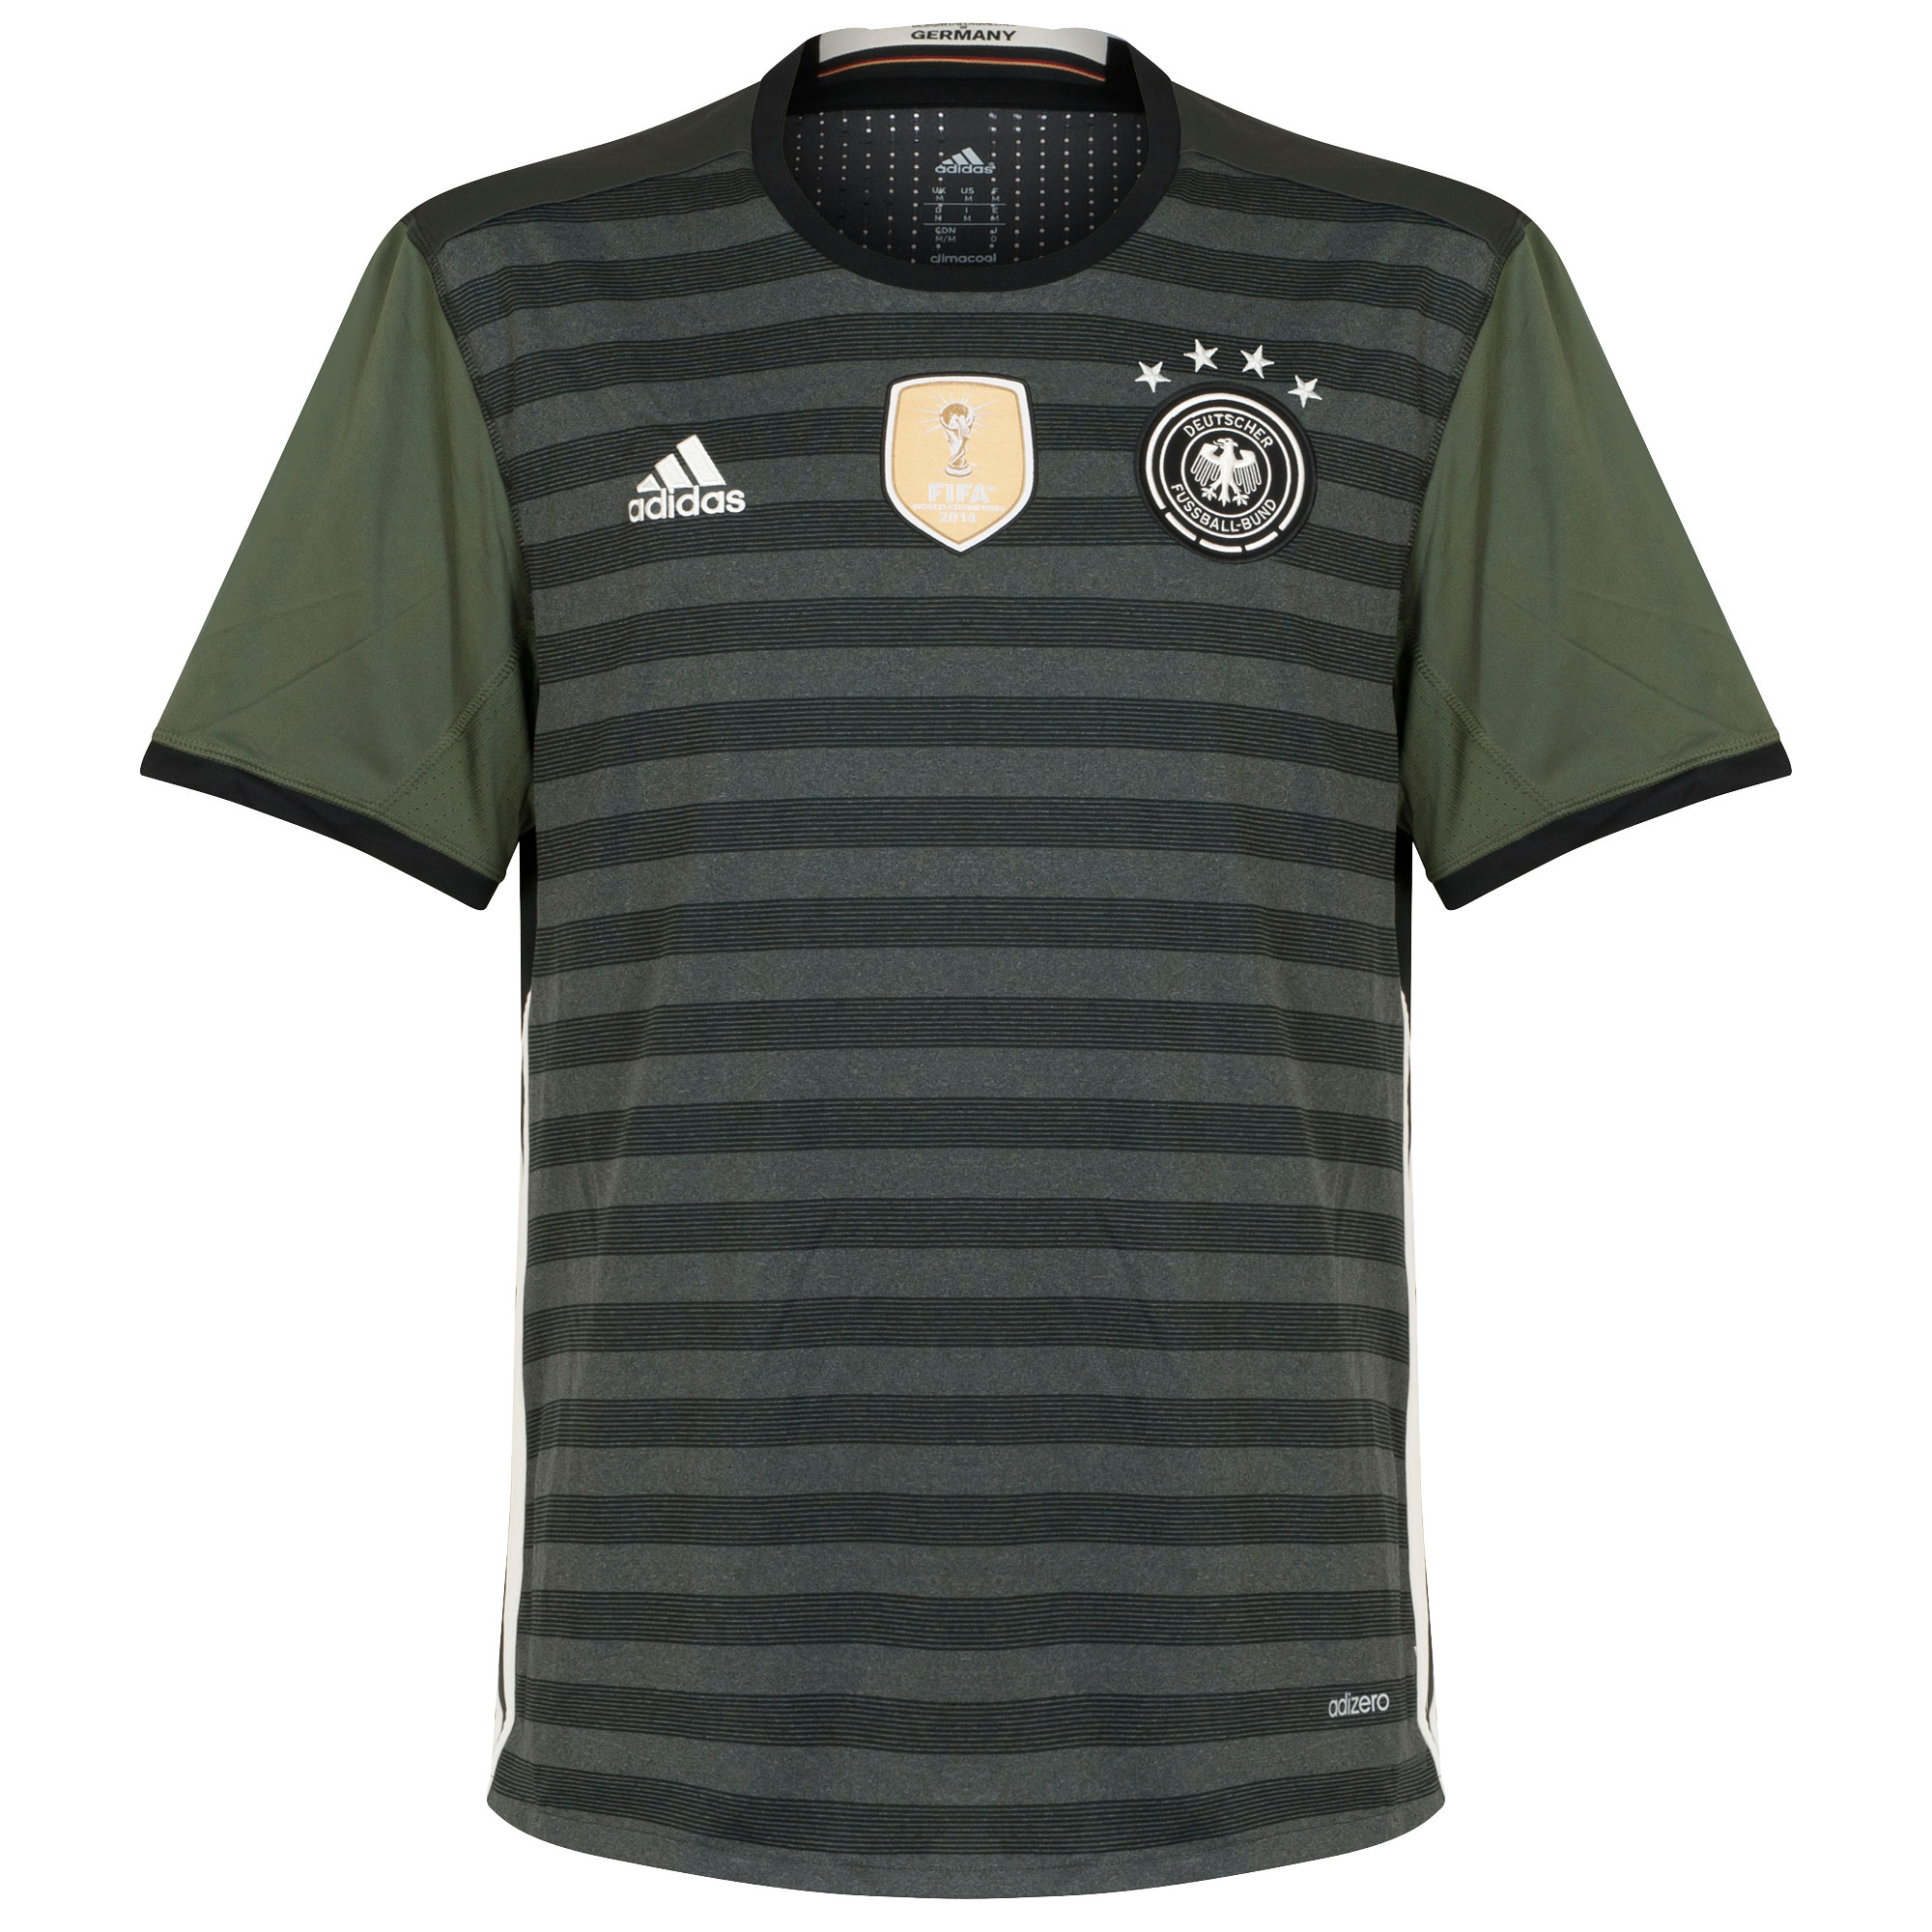 Germany Away Authentic Shirt 2016 2017